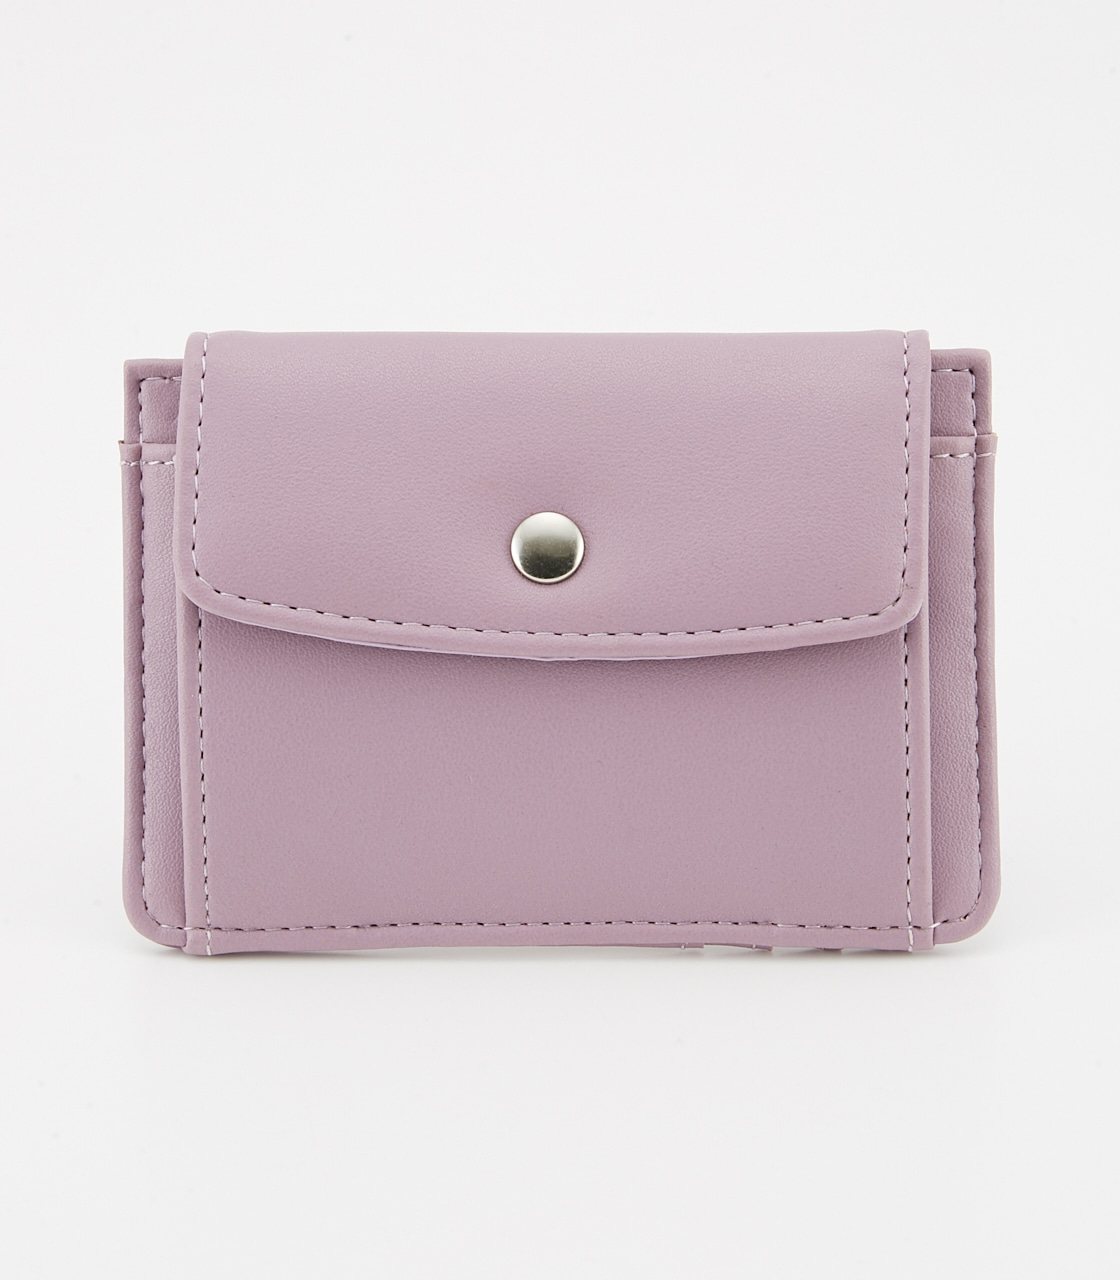 【AZUL BY MOUSSY】COIN+CARD PURSE 詳細画像 L/PUR 1